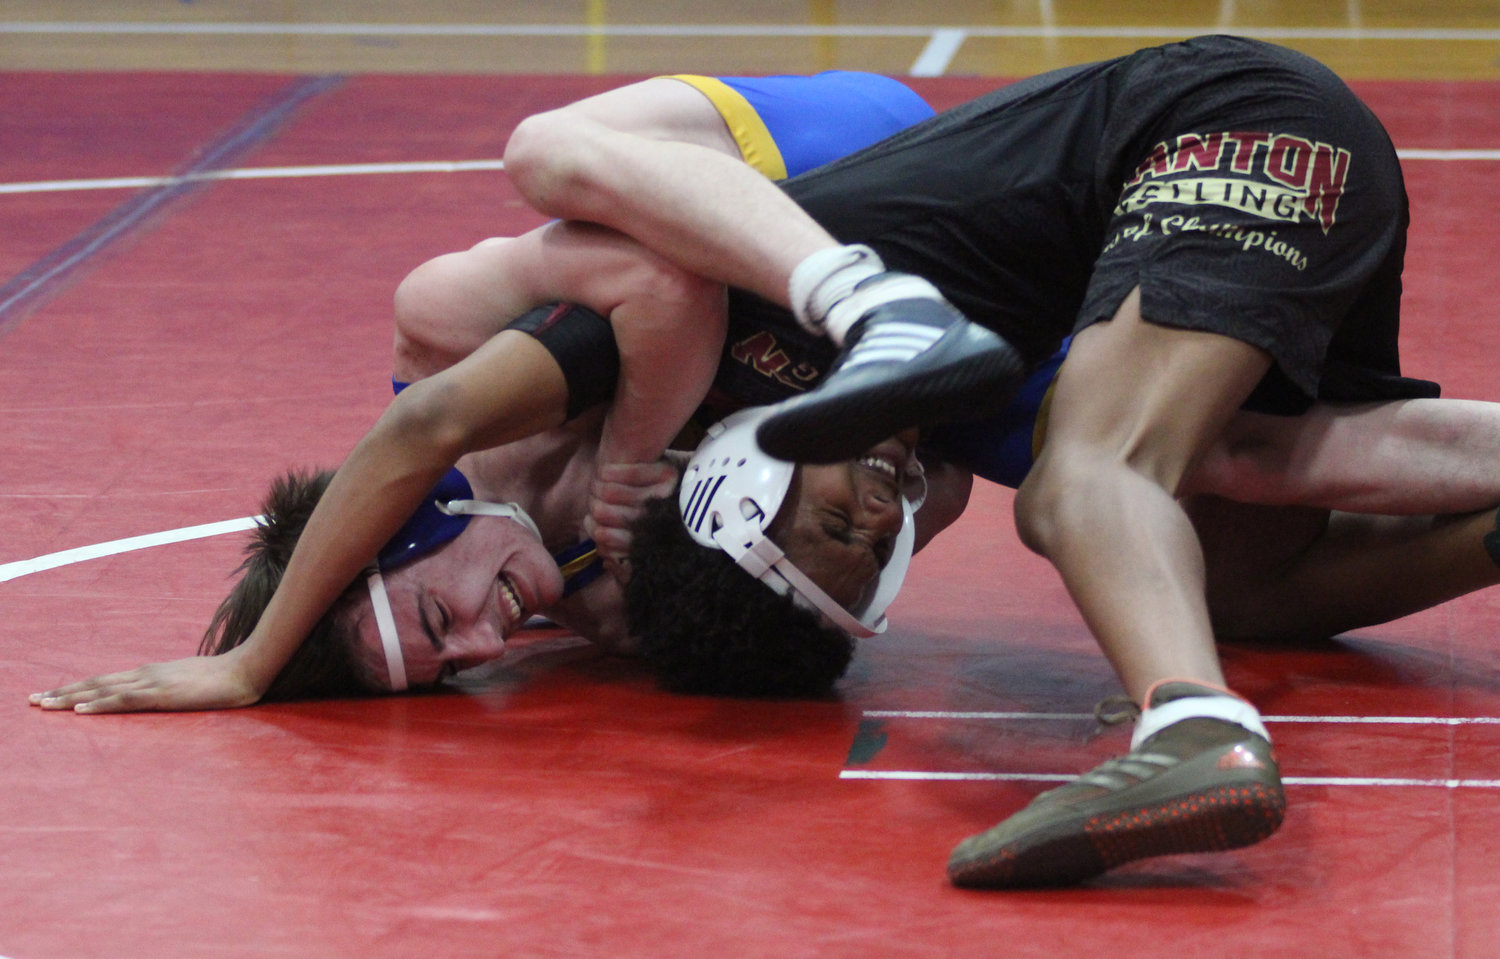 Kenny Britcher took on Miguel Guillen from Scranton at the New Oxford tournament on Jan. 18.